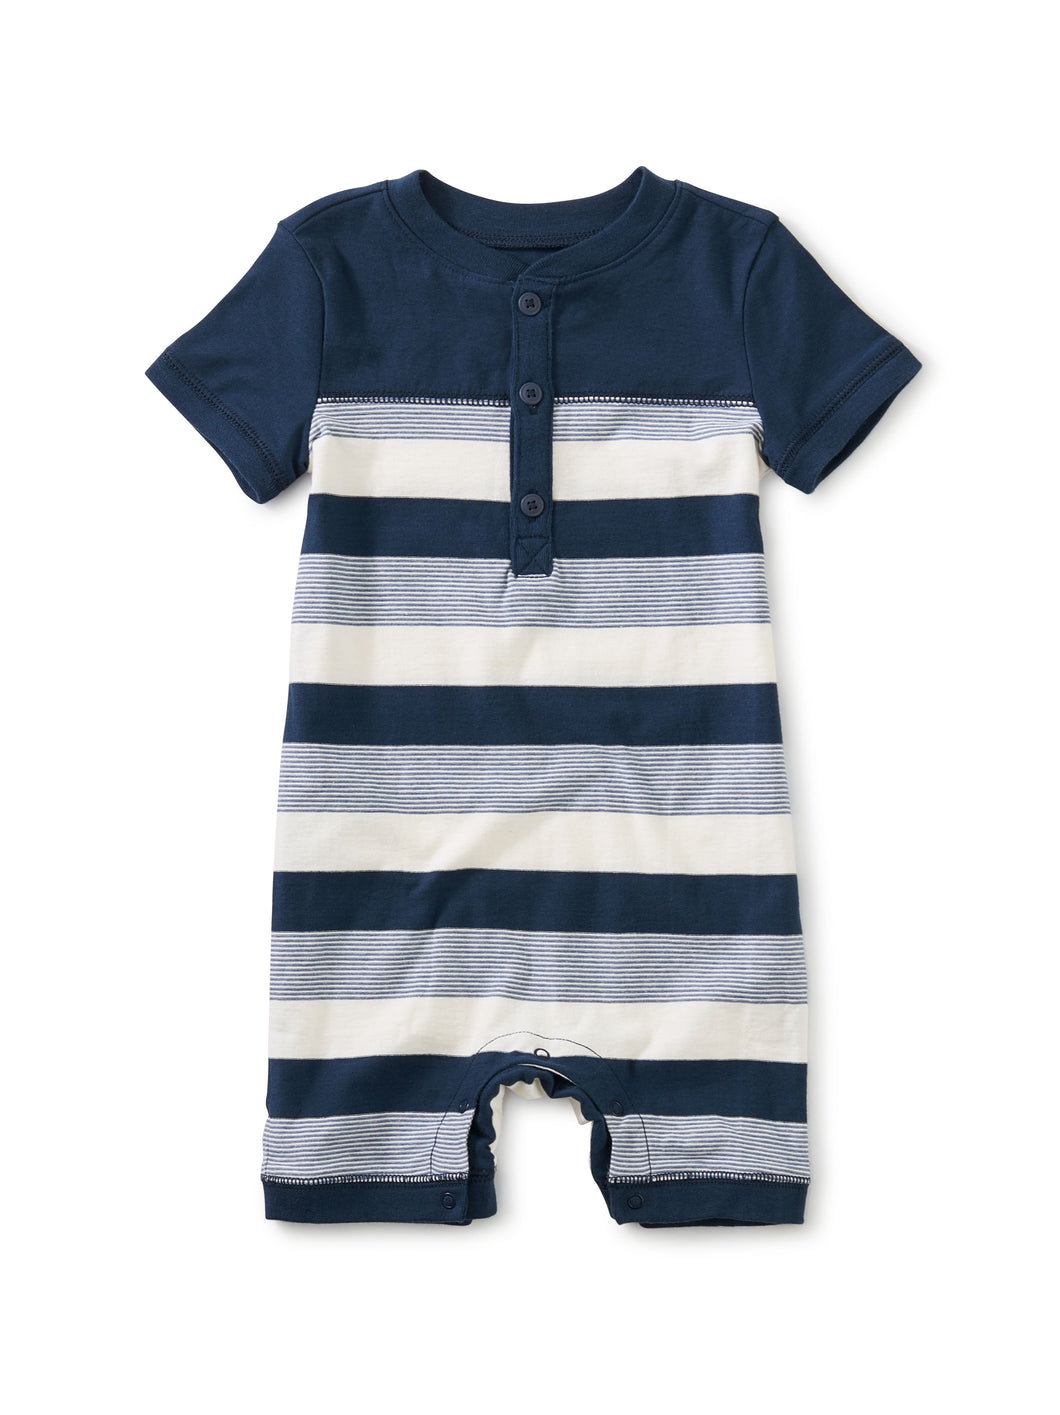 Tea Collection Henley Baby Romper - Whale Blue